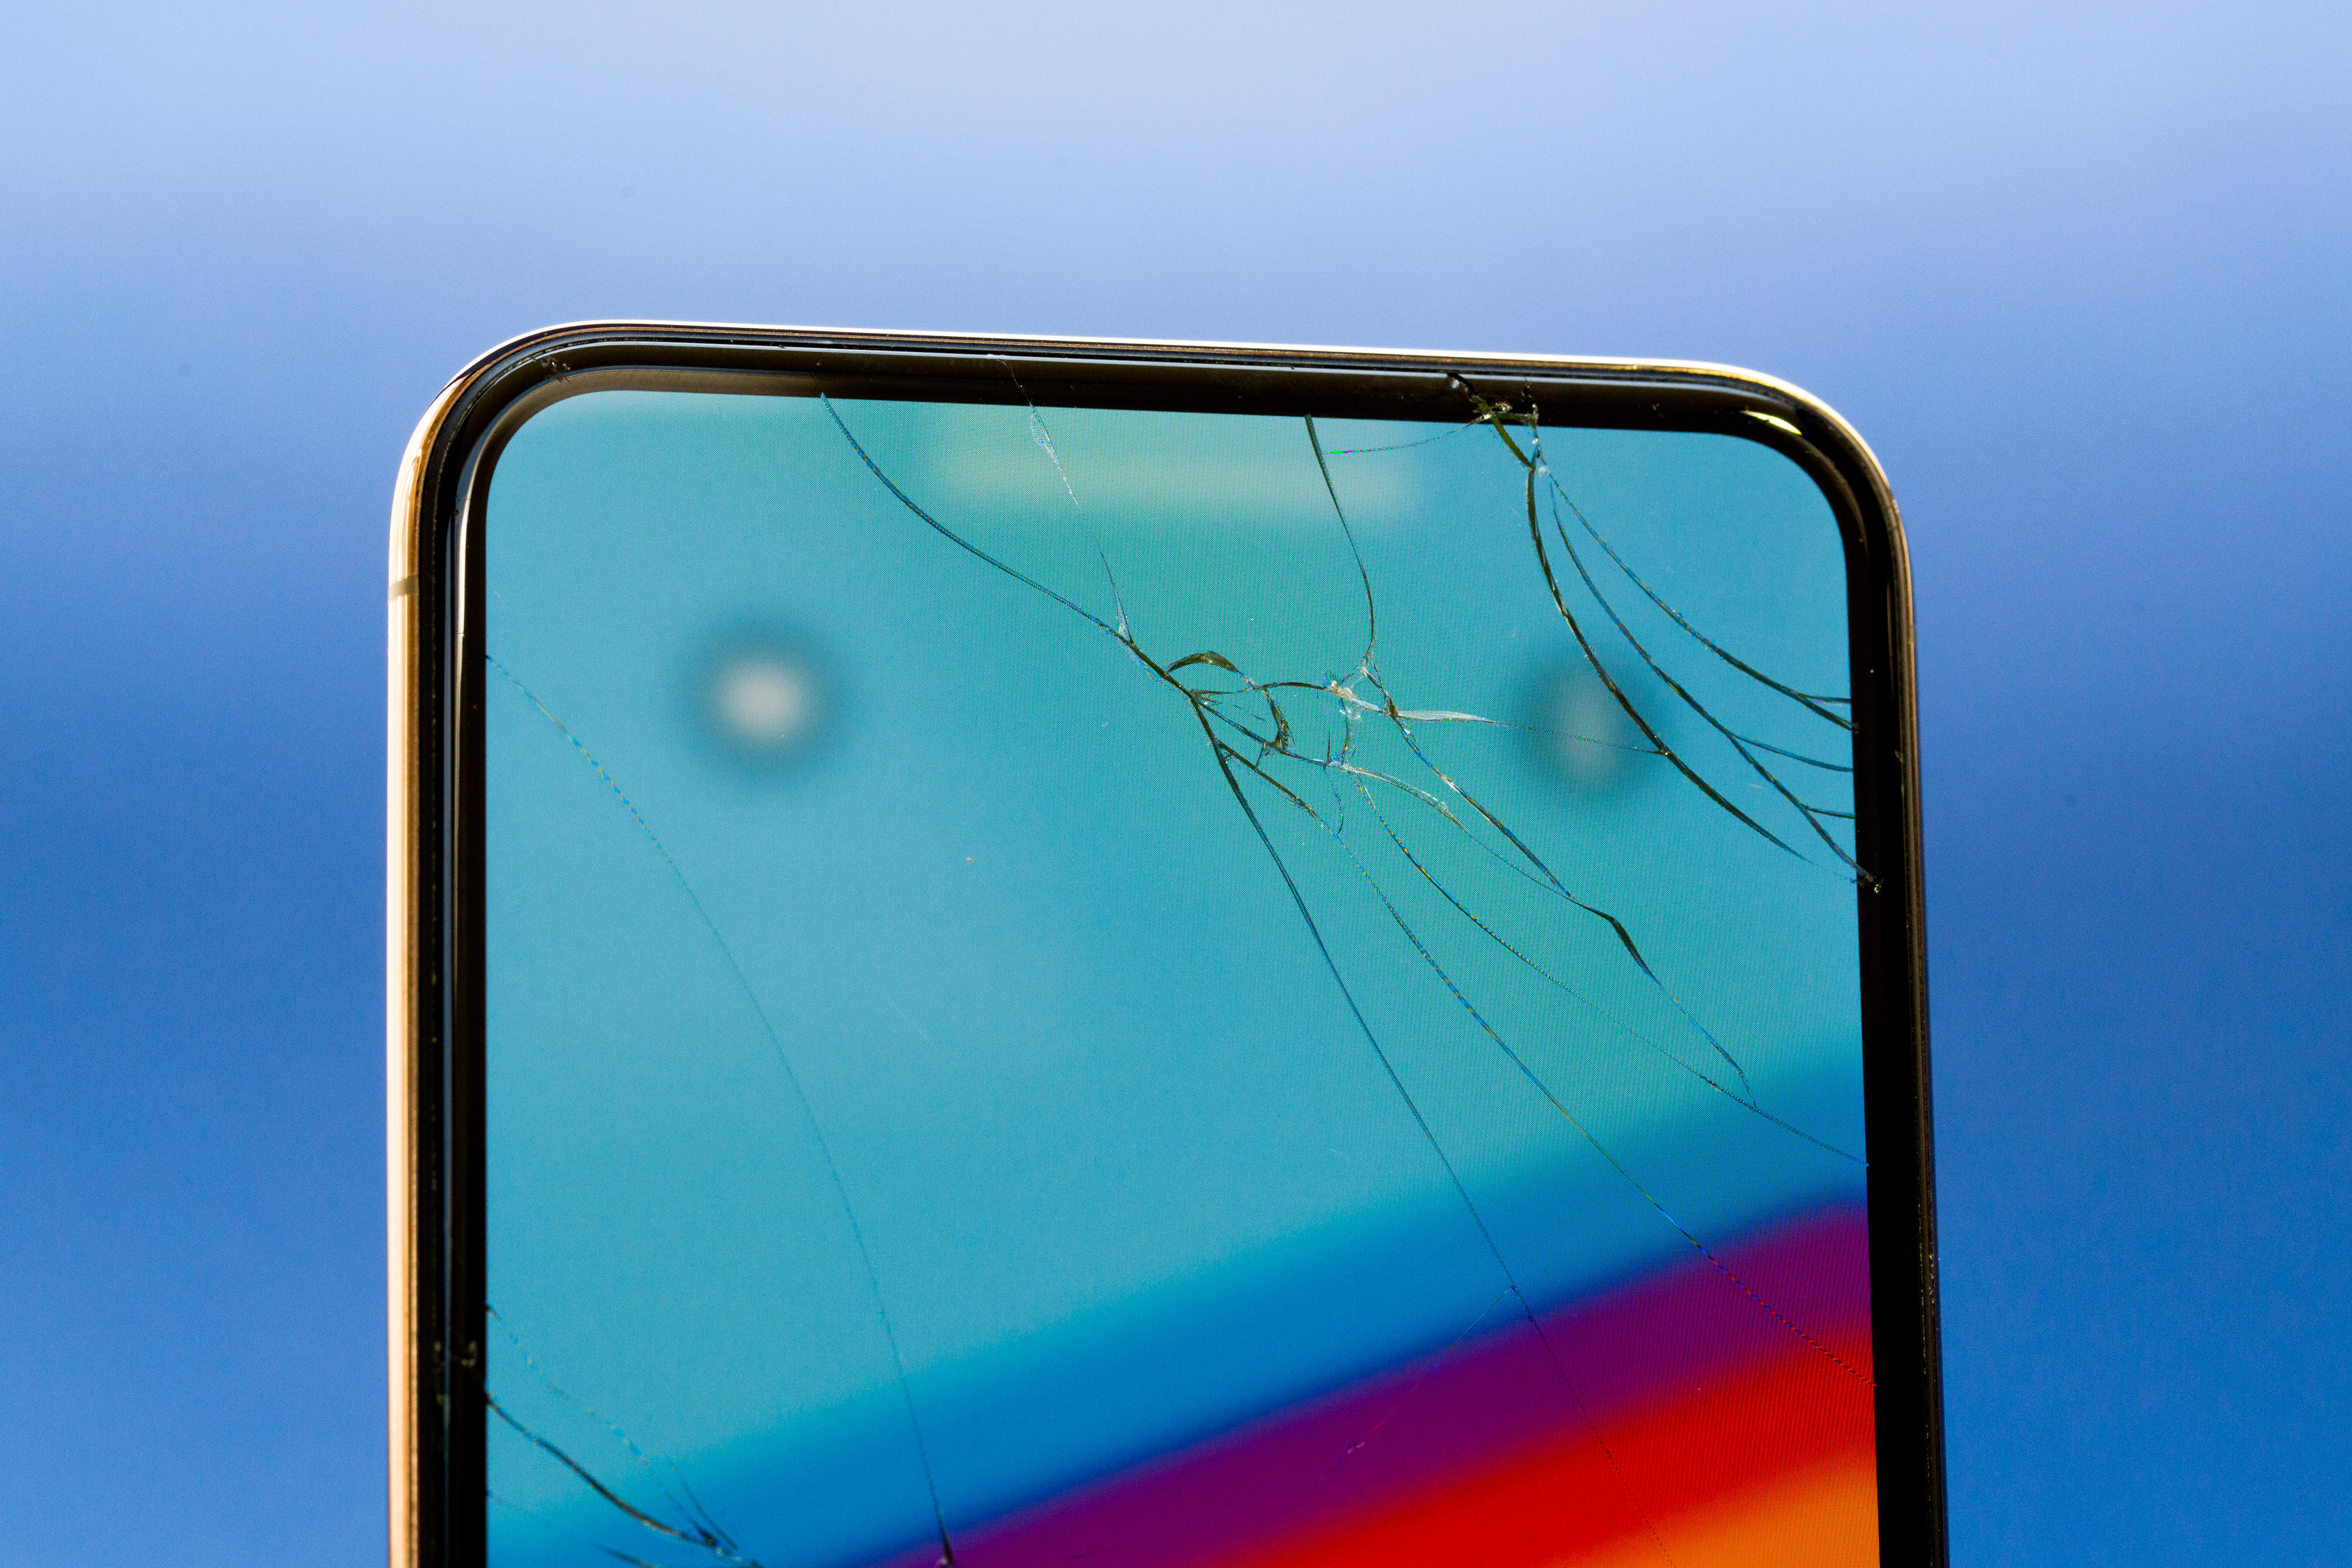 iphone-xs-max-broken-screen-4